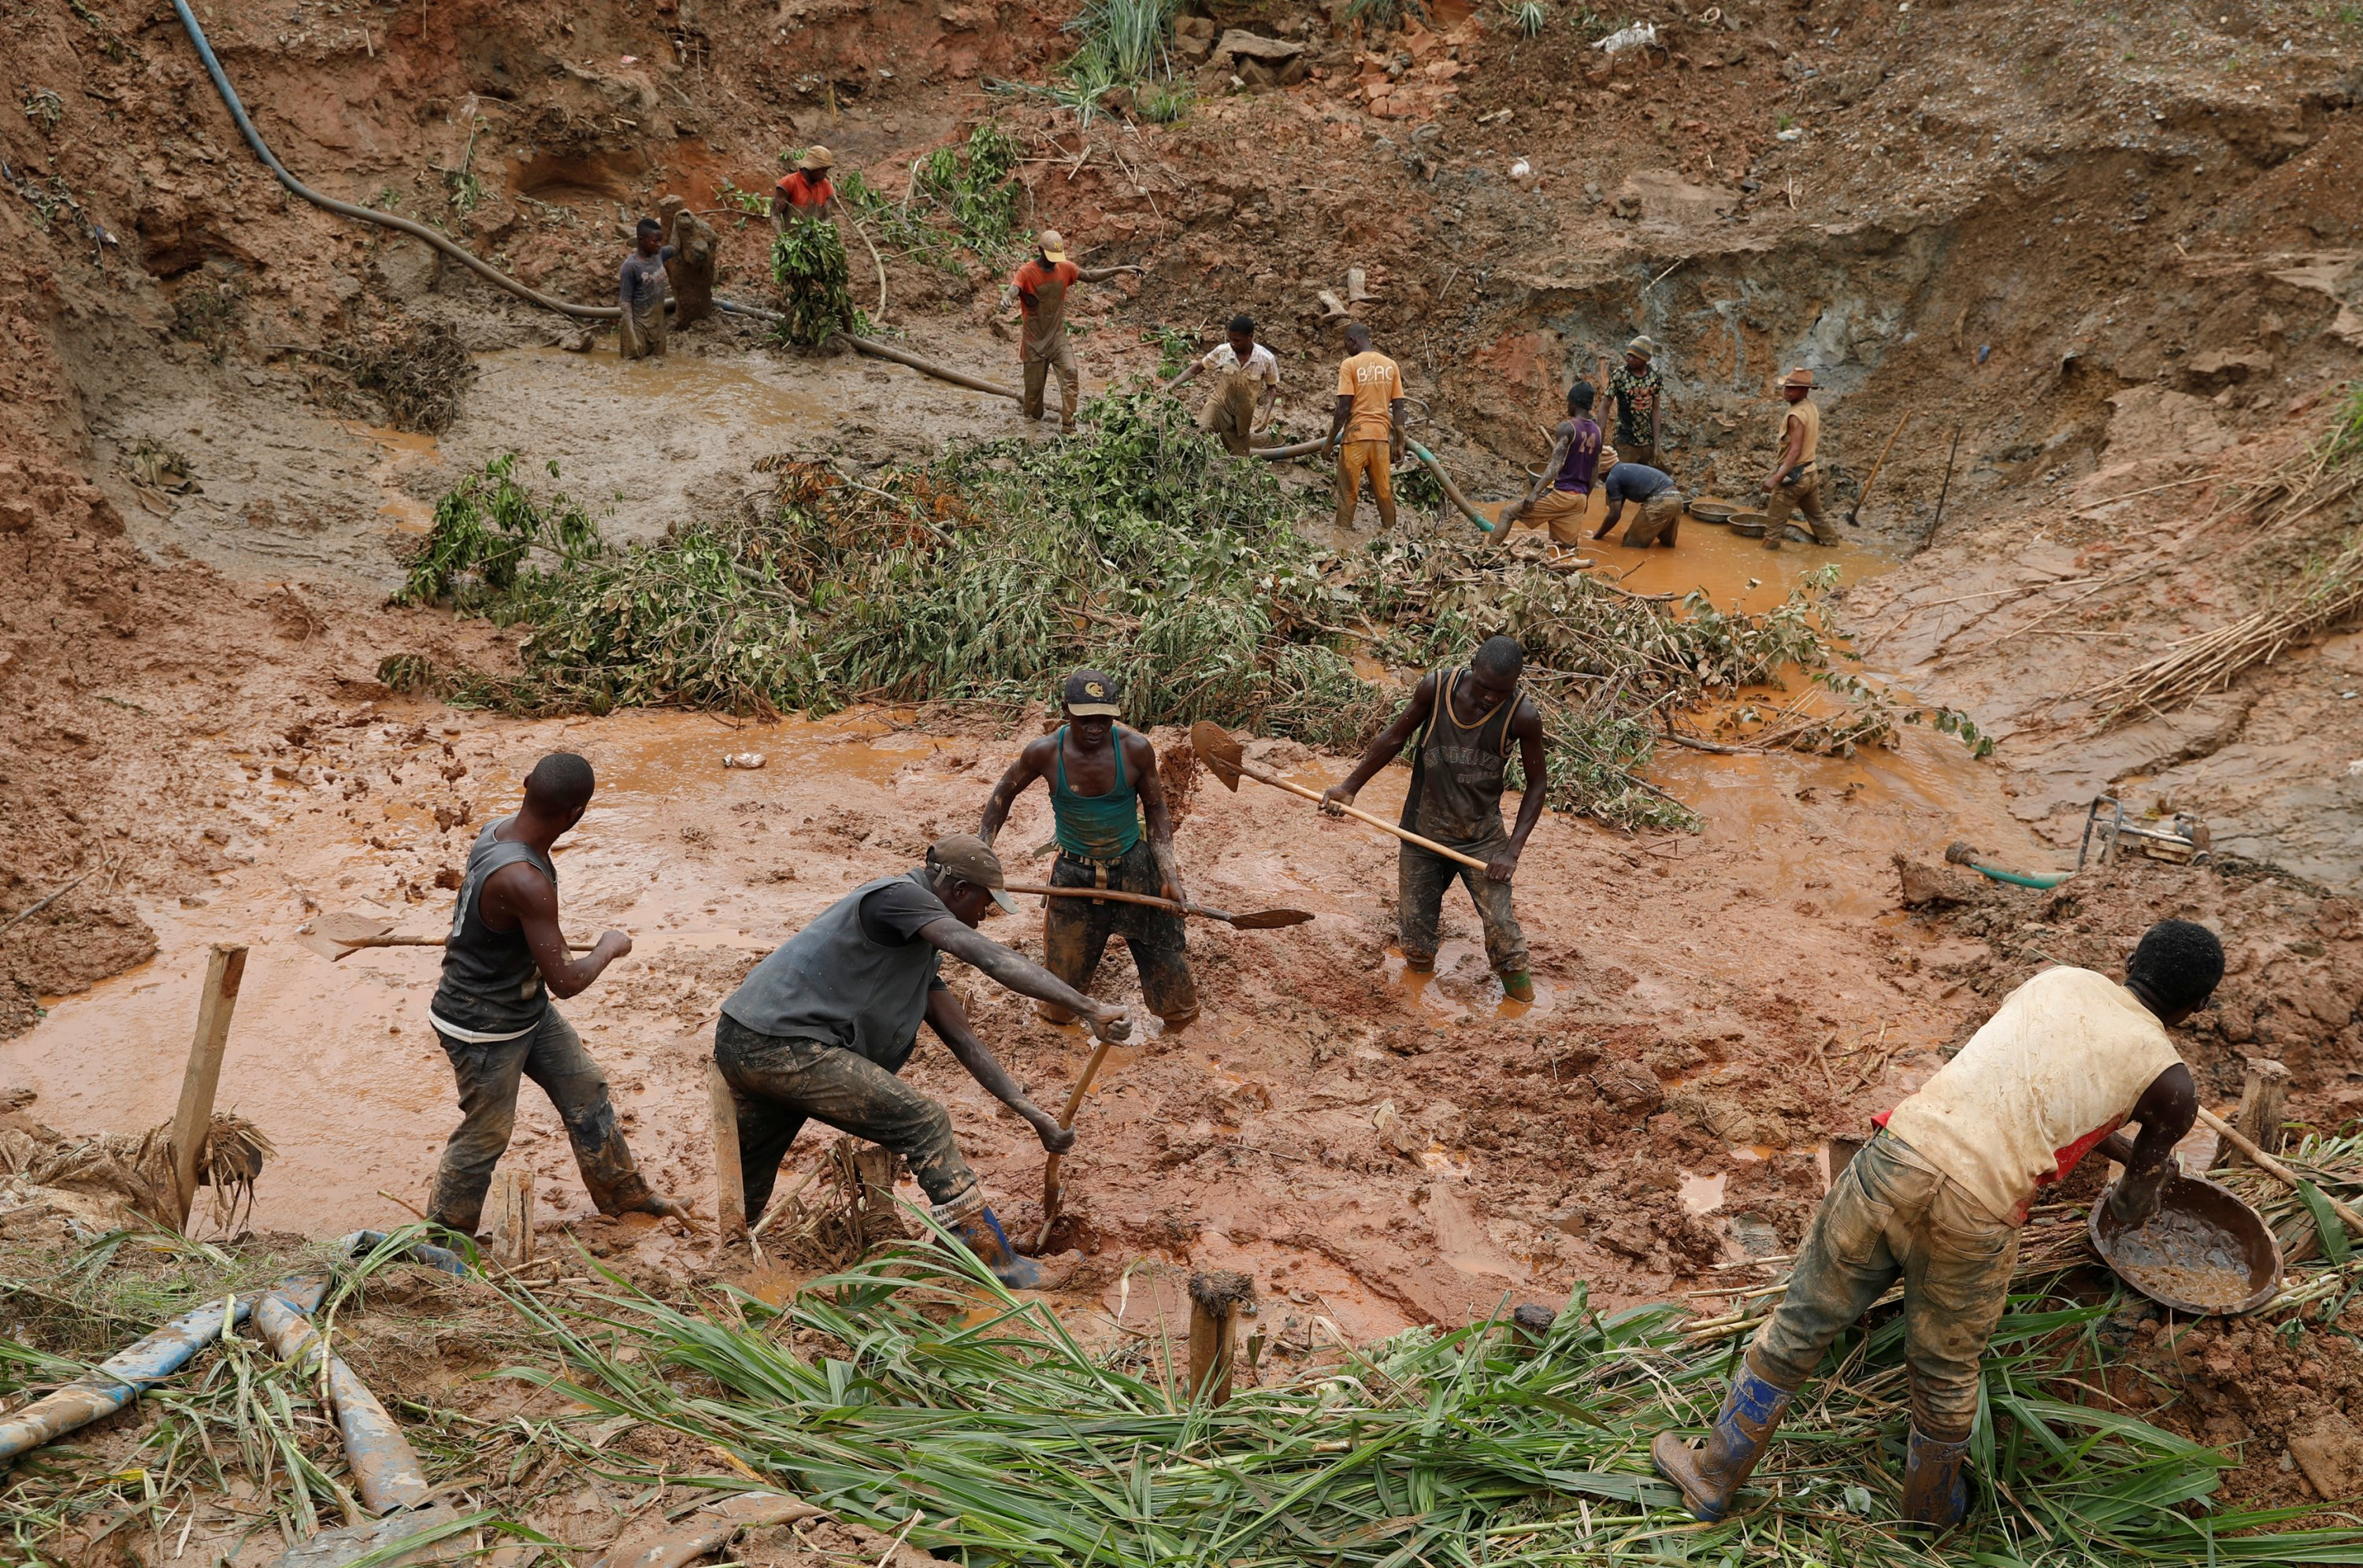 Men work at Makala gold mine camp near the town of Mongbwalu in Ituri province, the Democratic Republic of Congo, April 7, 2018. (REUTERS Photo)